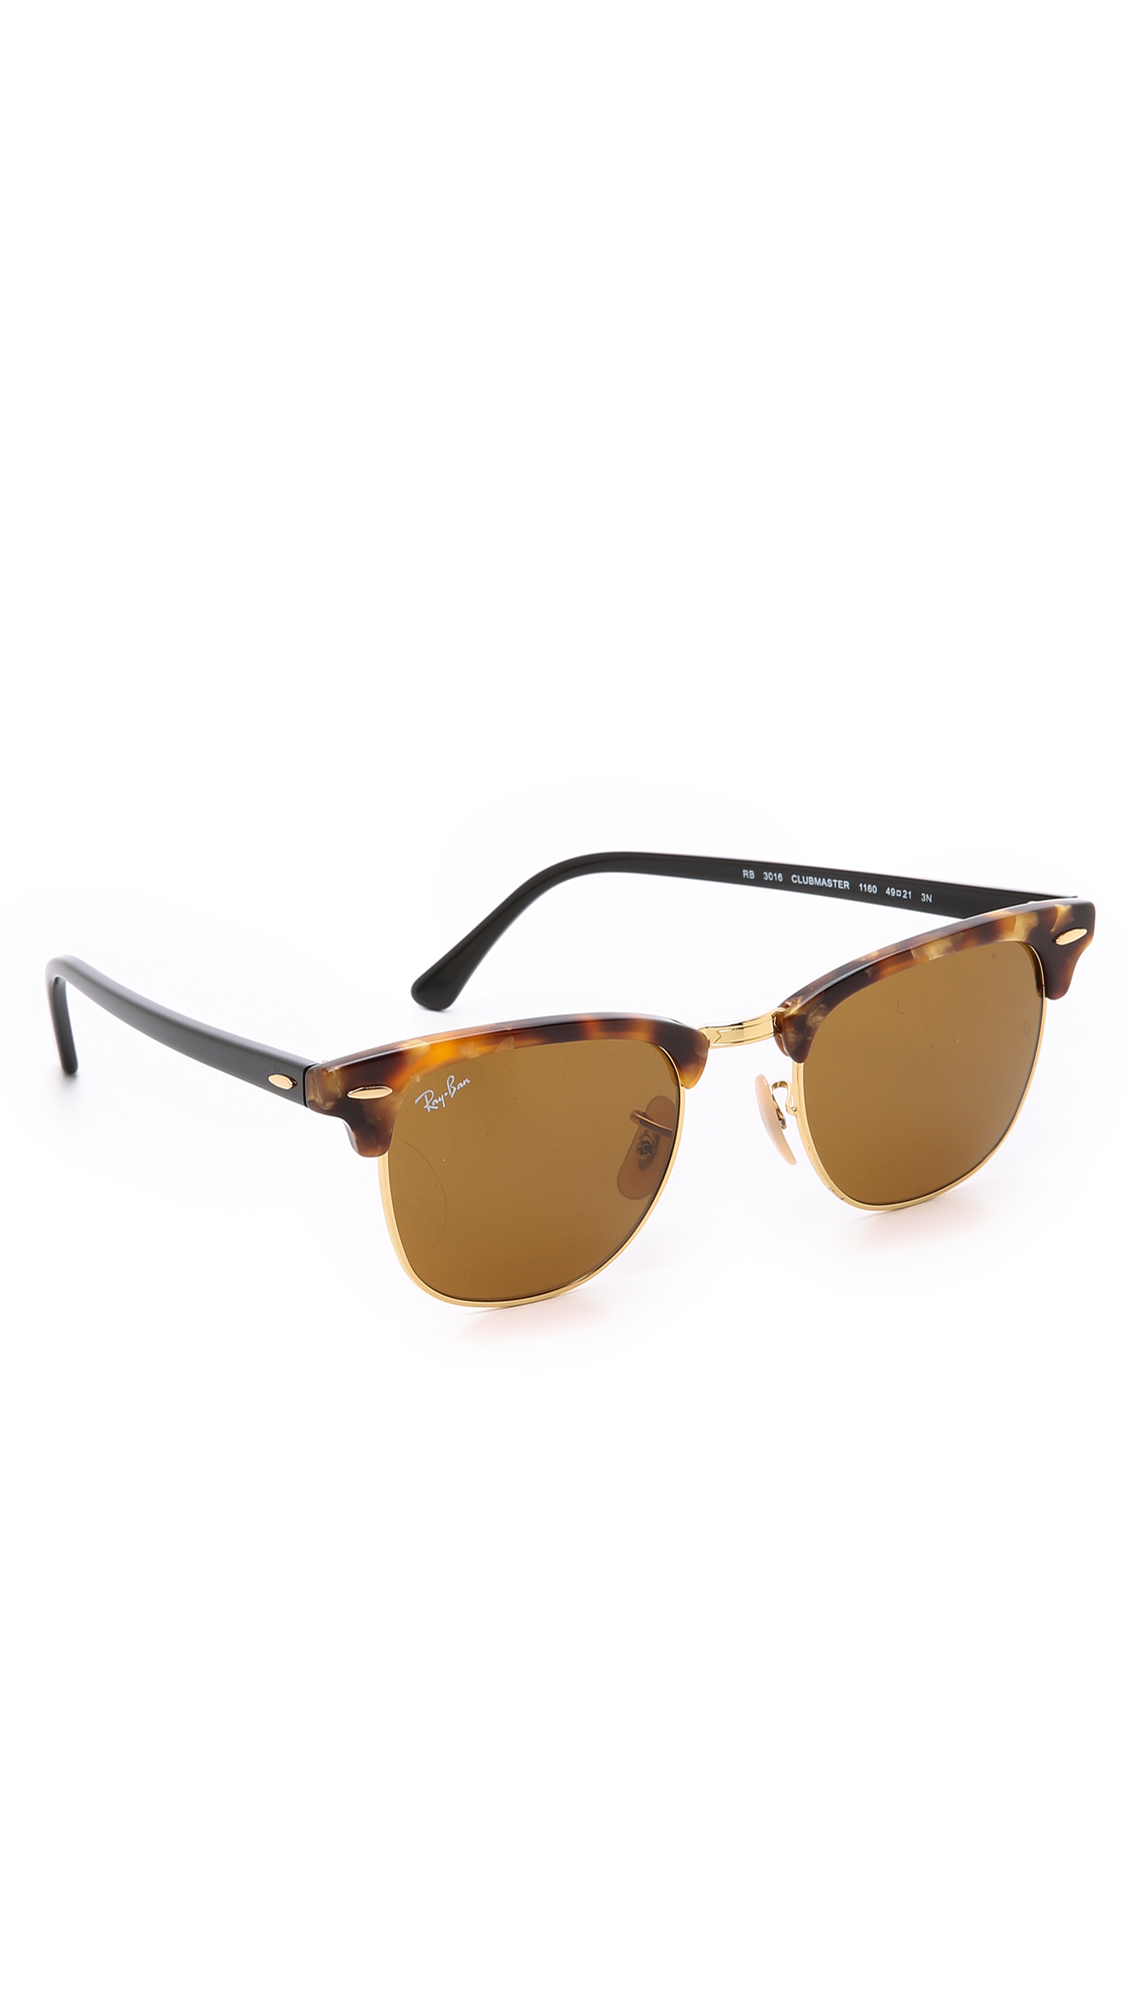 7c0530c3680 Clubmaster Brown Yellow « One More Soul